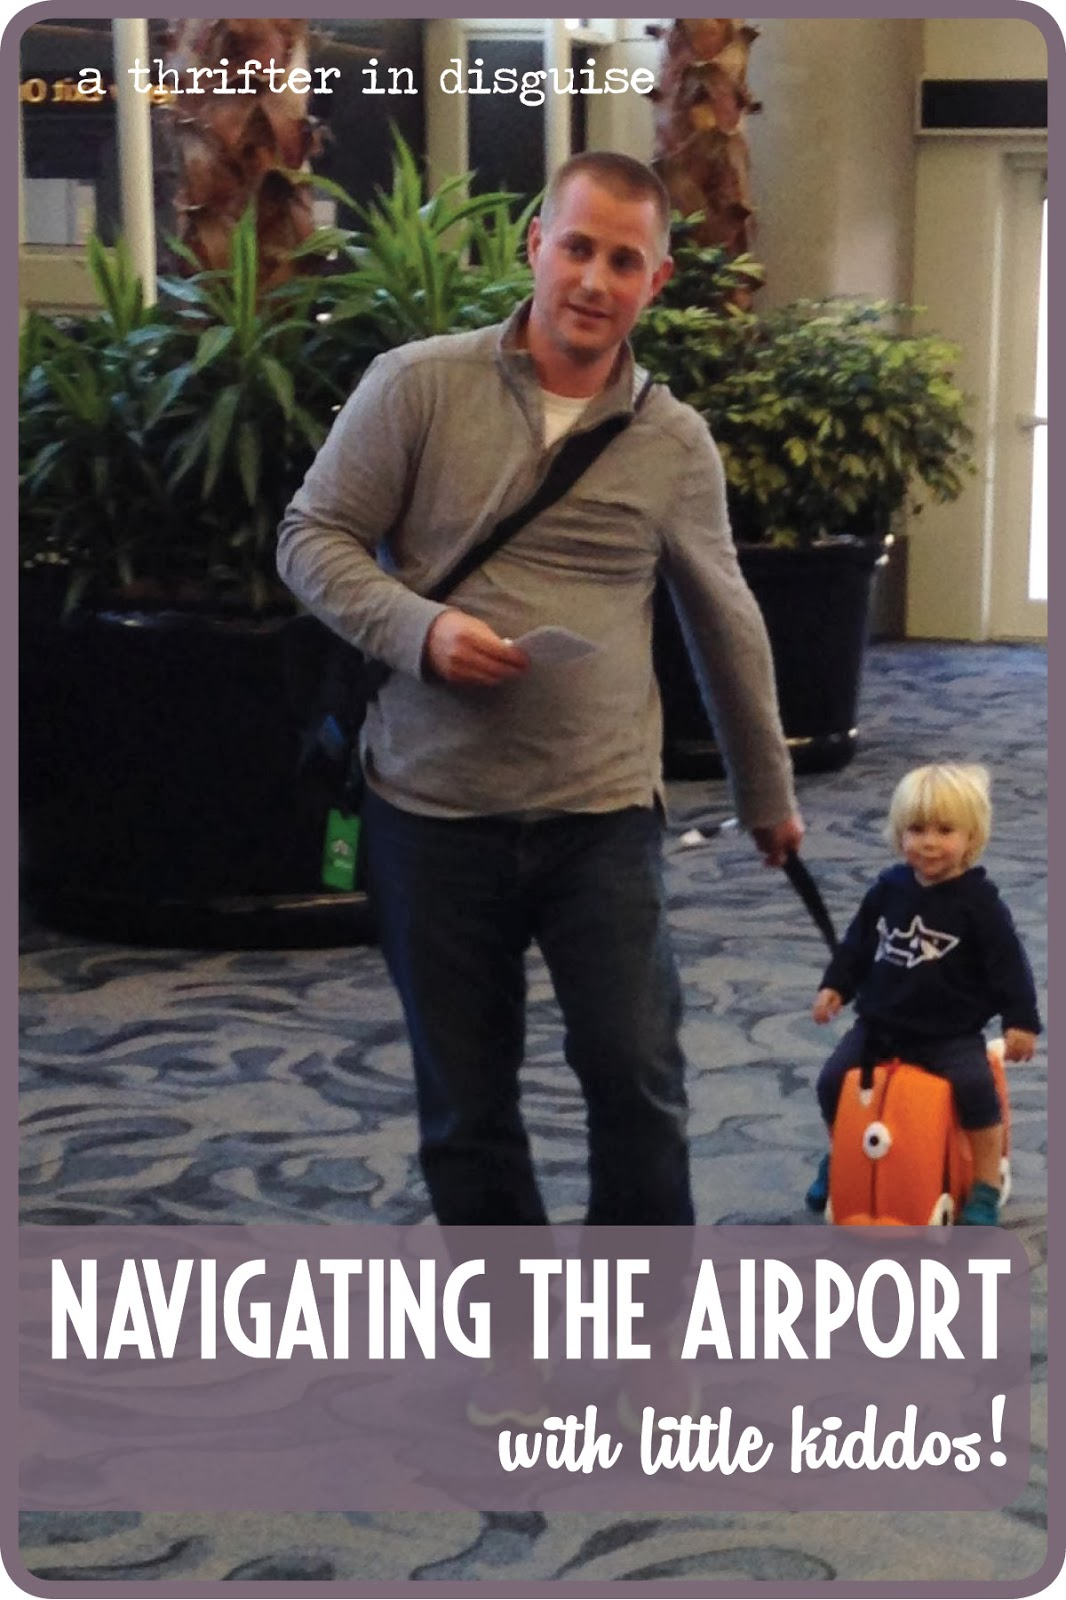 Getting through airport with kids